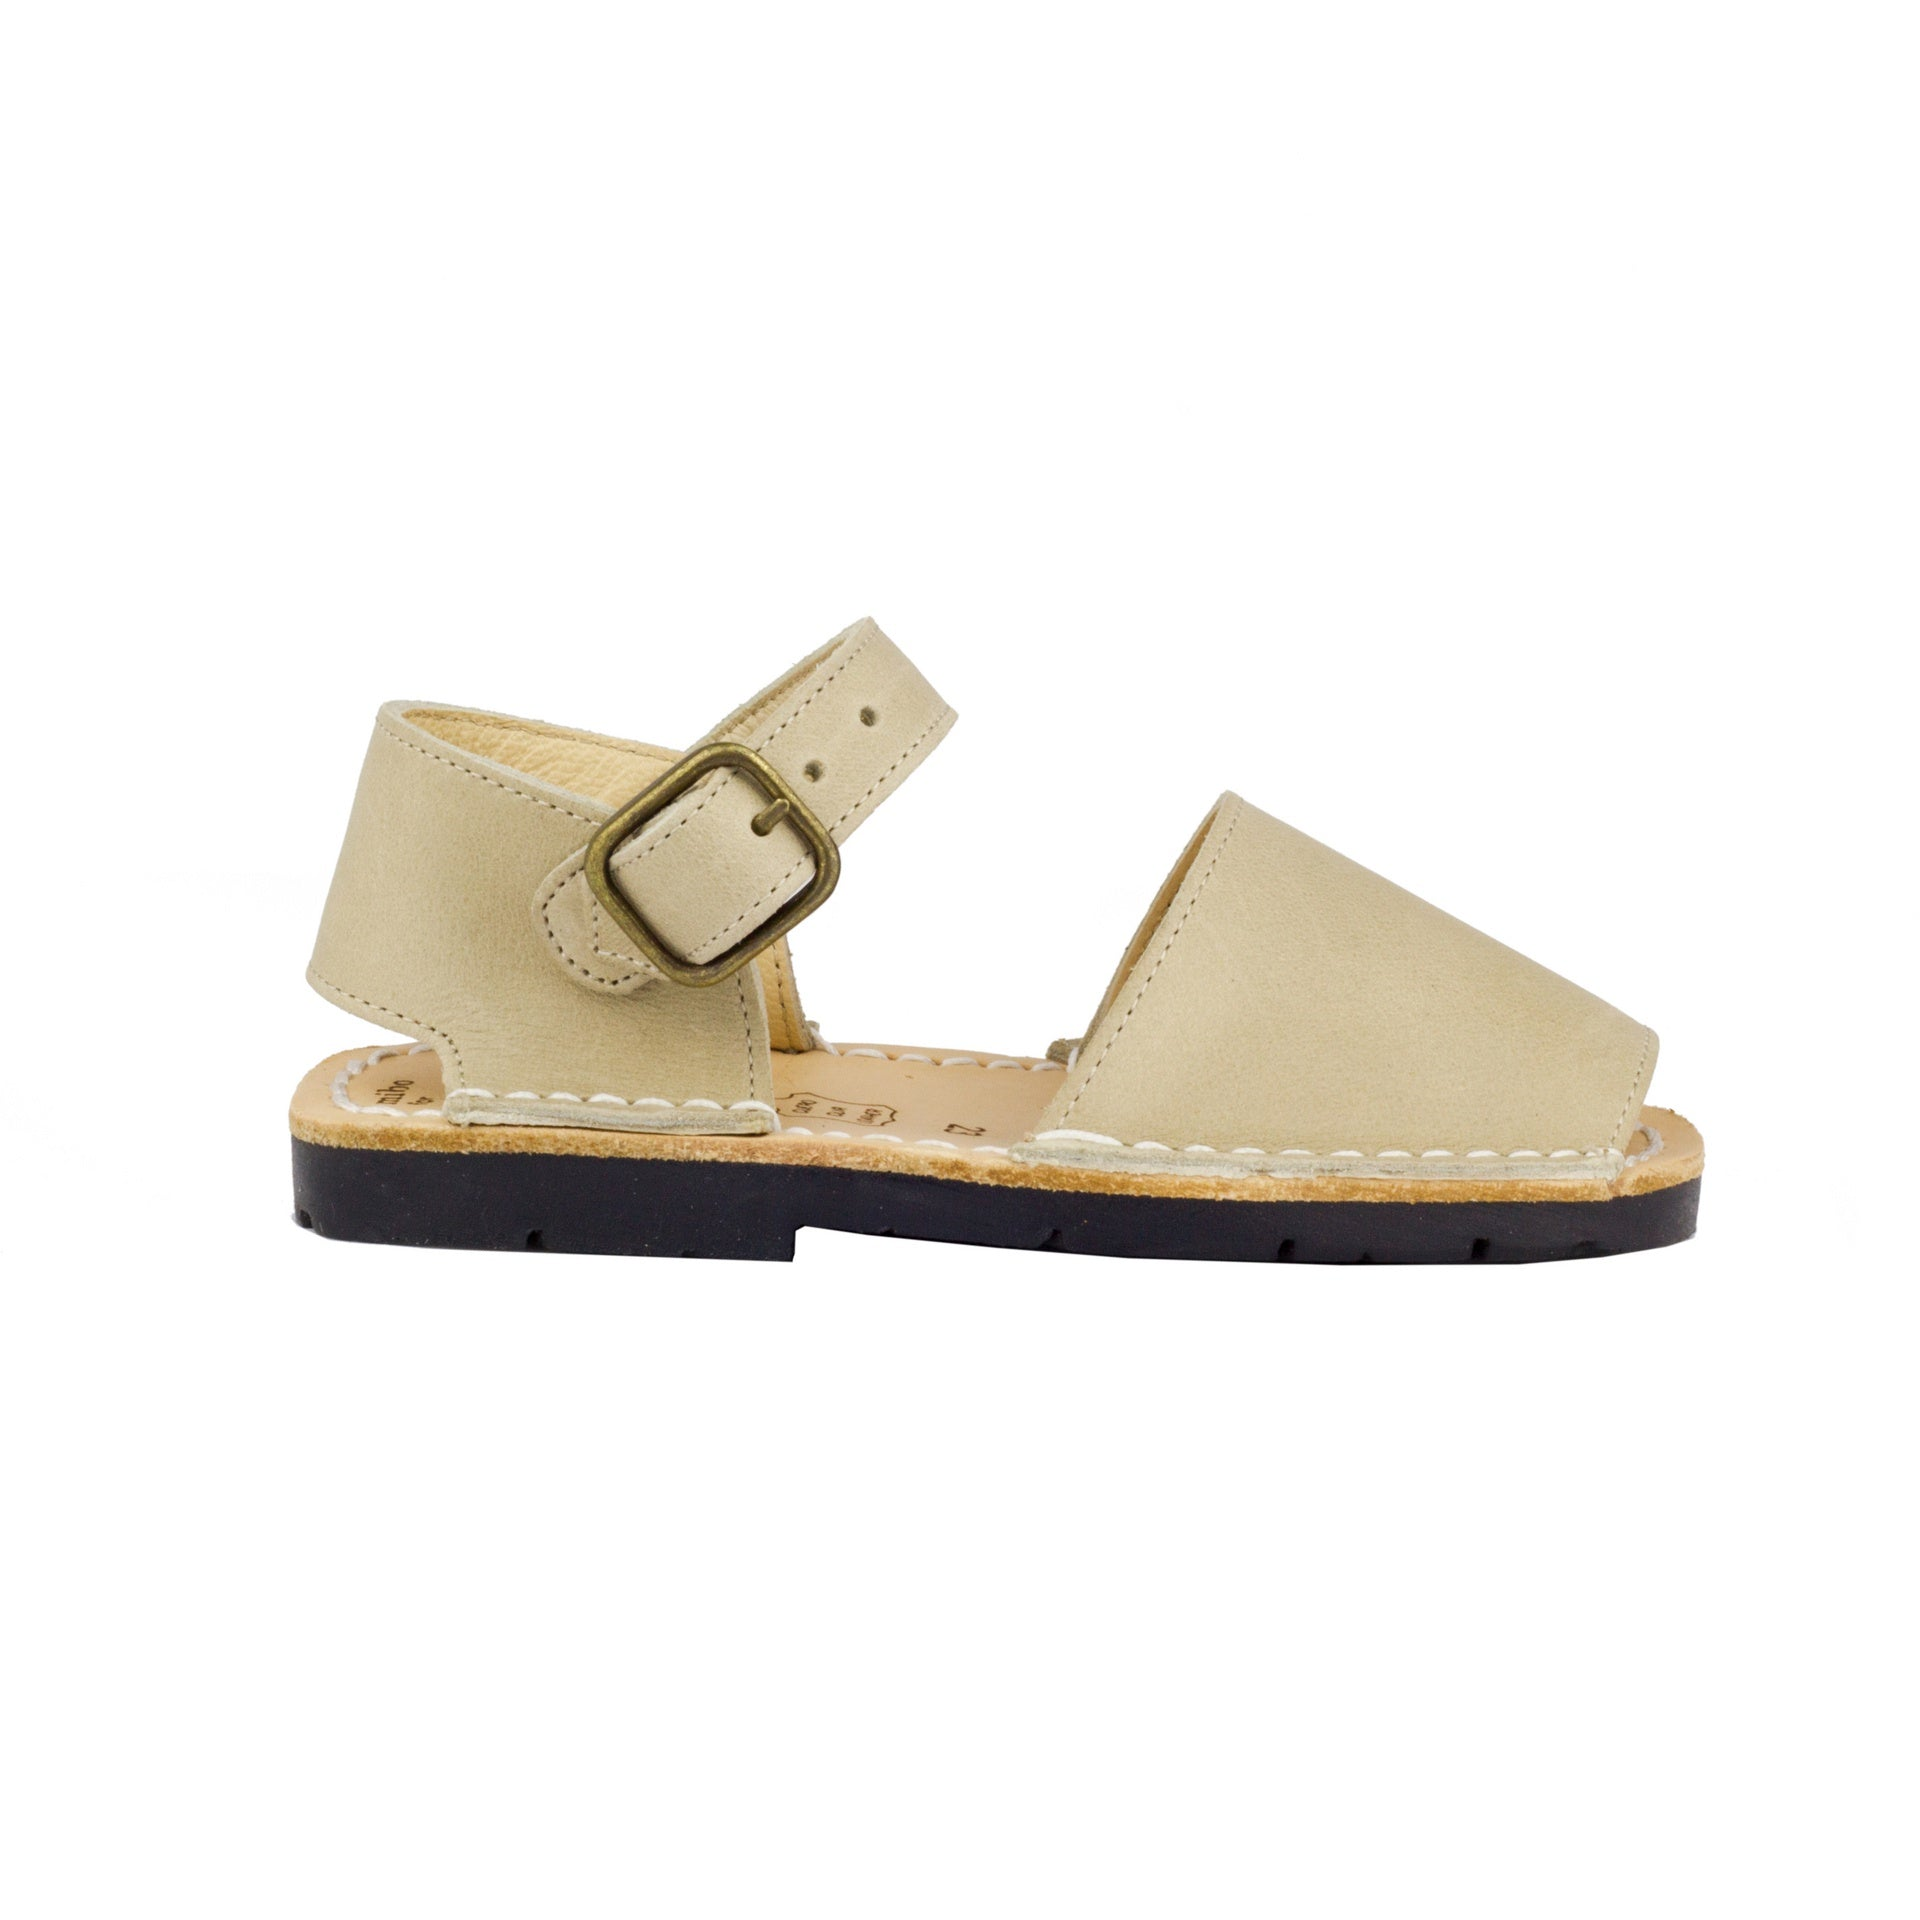 Beige Leather Buckle البيج جلد مشبك